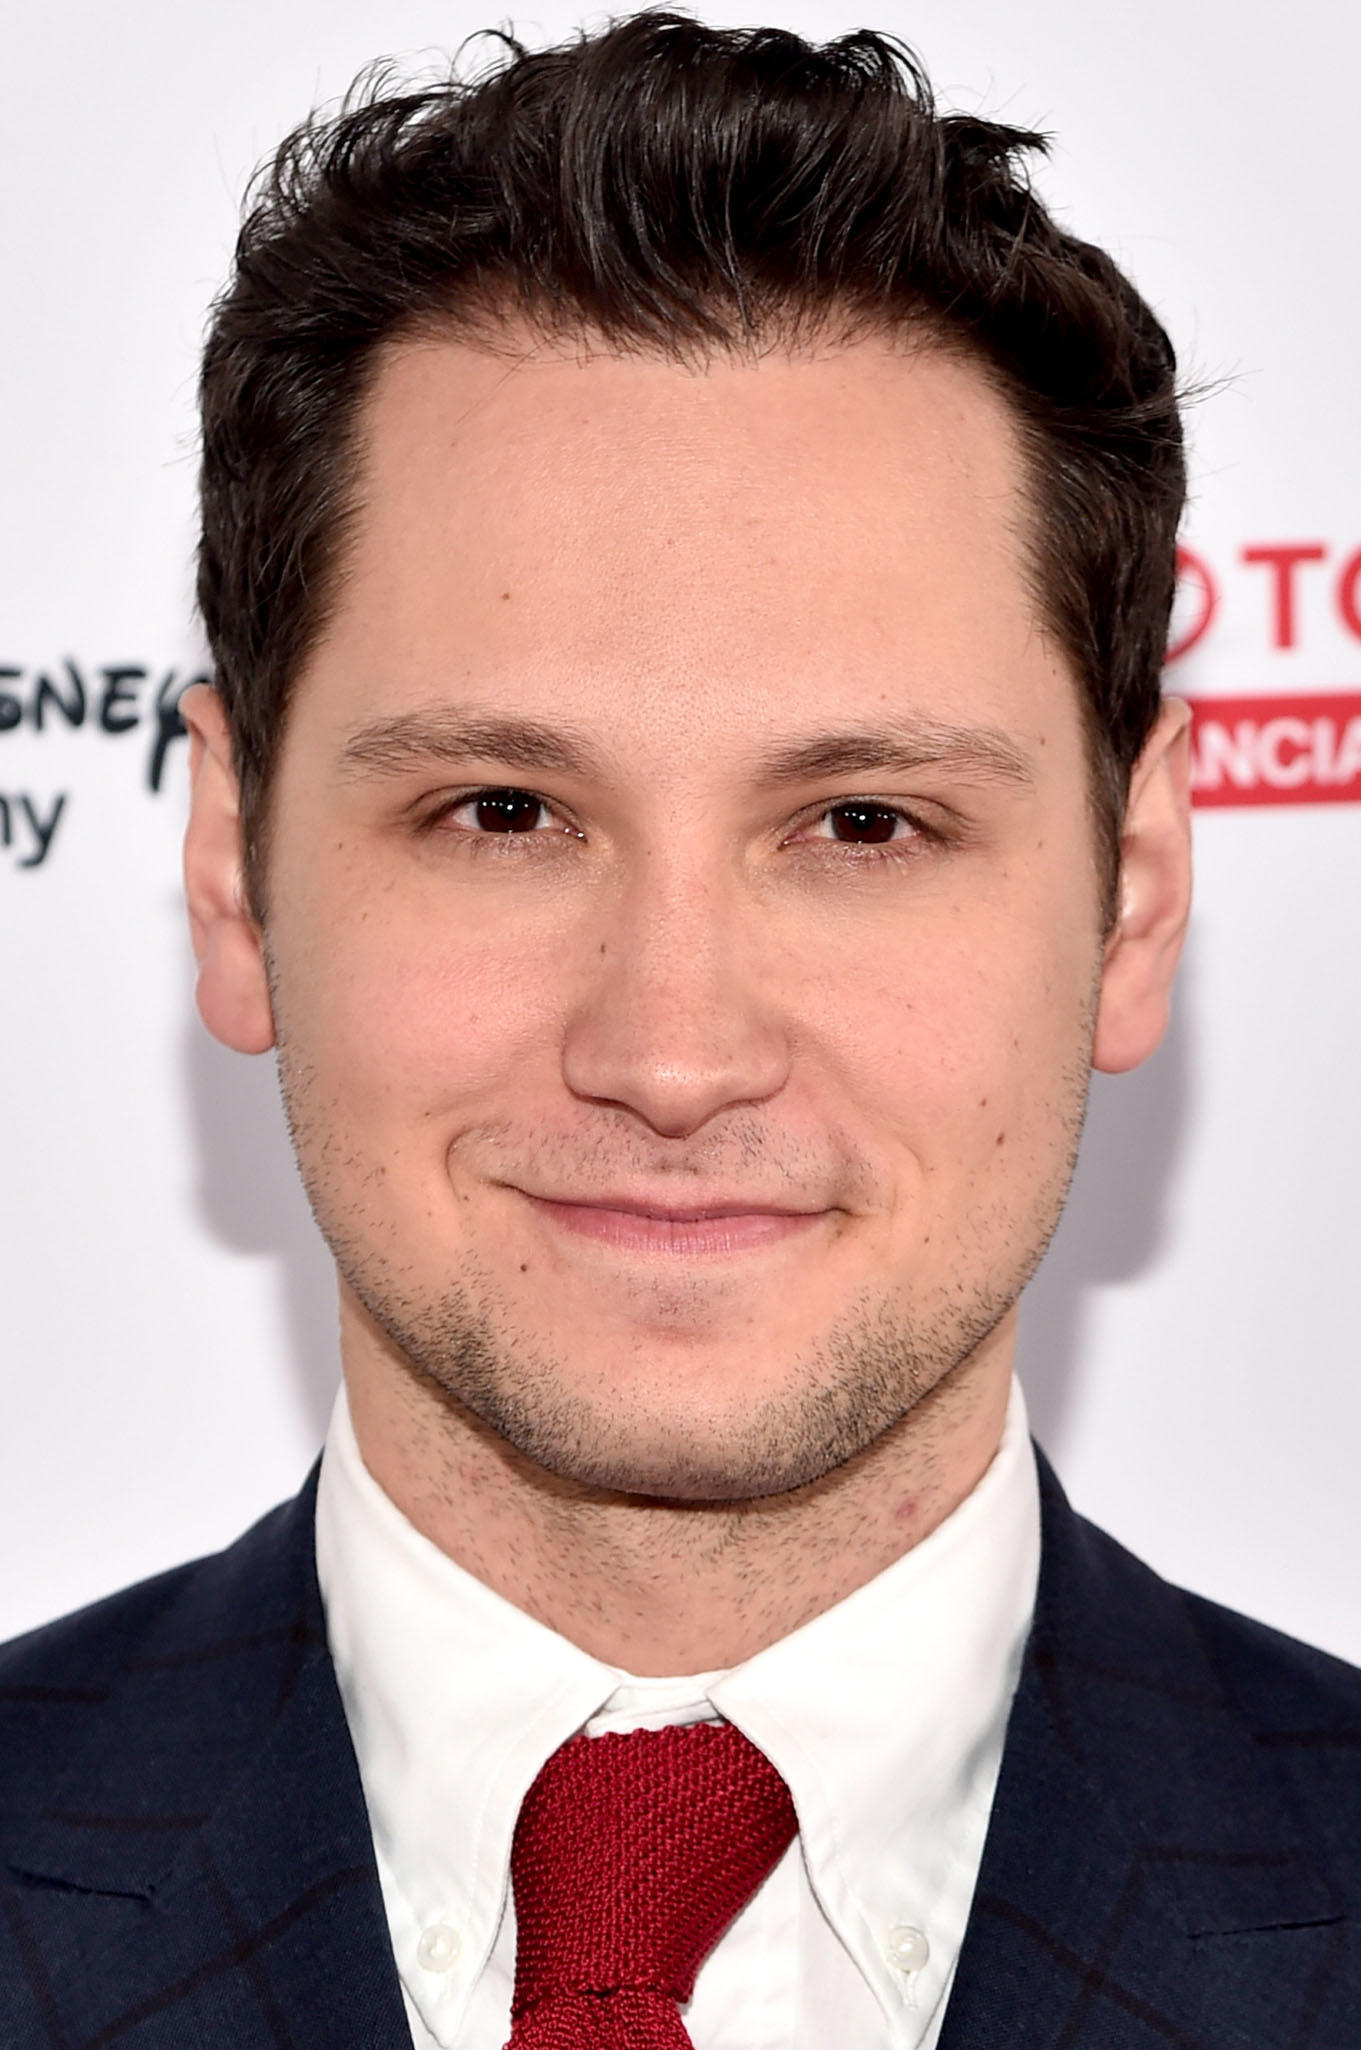 Matt McGorry at TrevorLIVE LA 2015 in Hollywood.